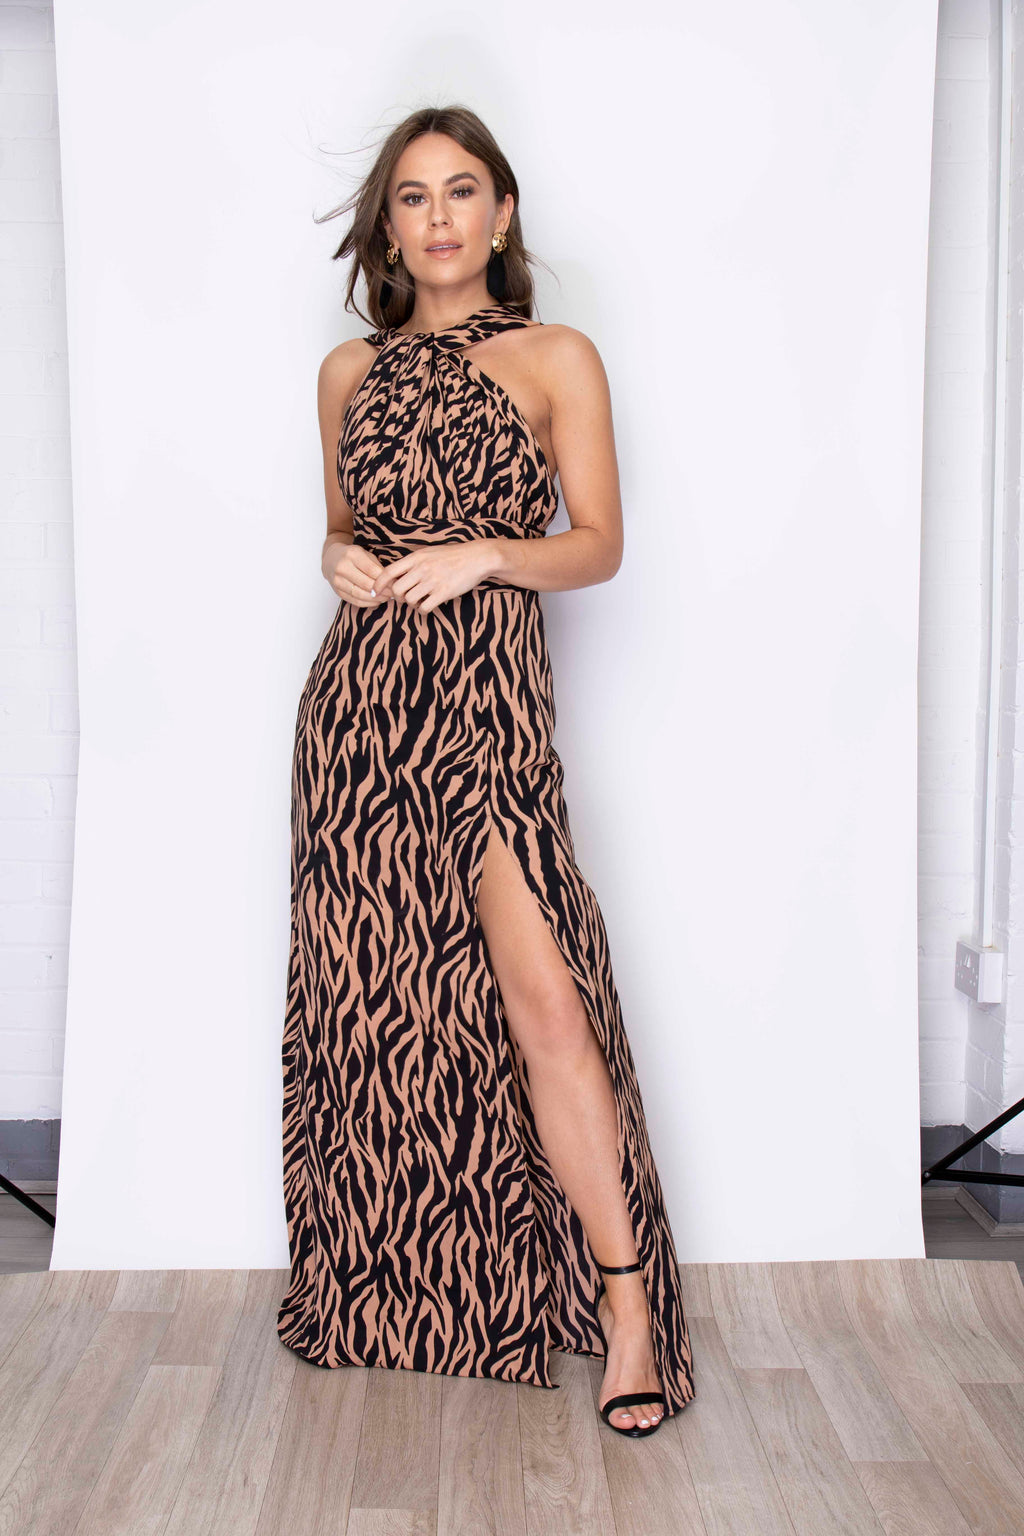 TWIST DETAIL HALTERNECK SIDE SPLIT MAXI DRESS - TIGER PRINT